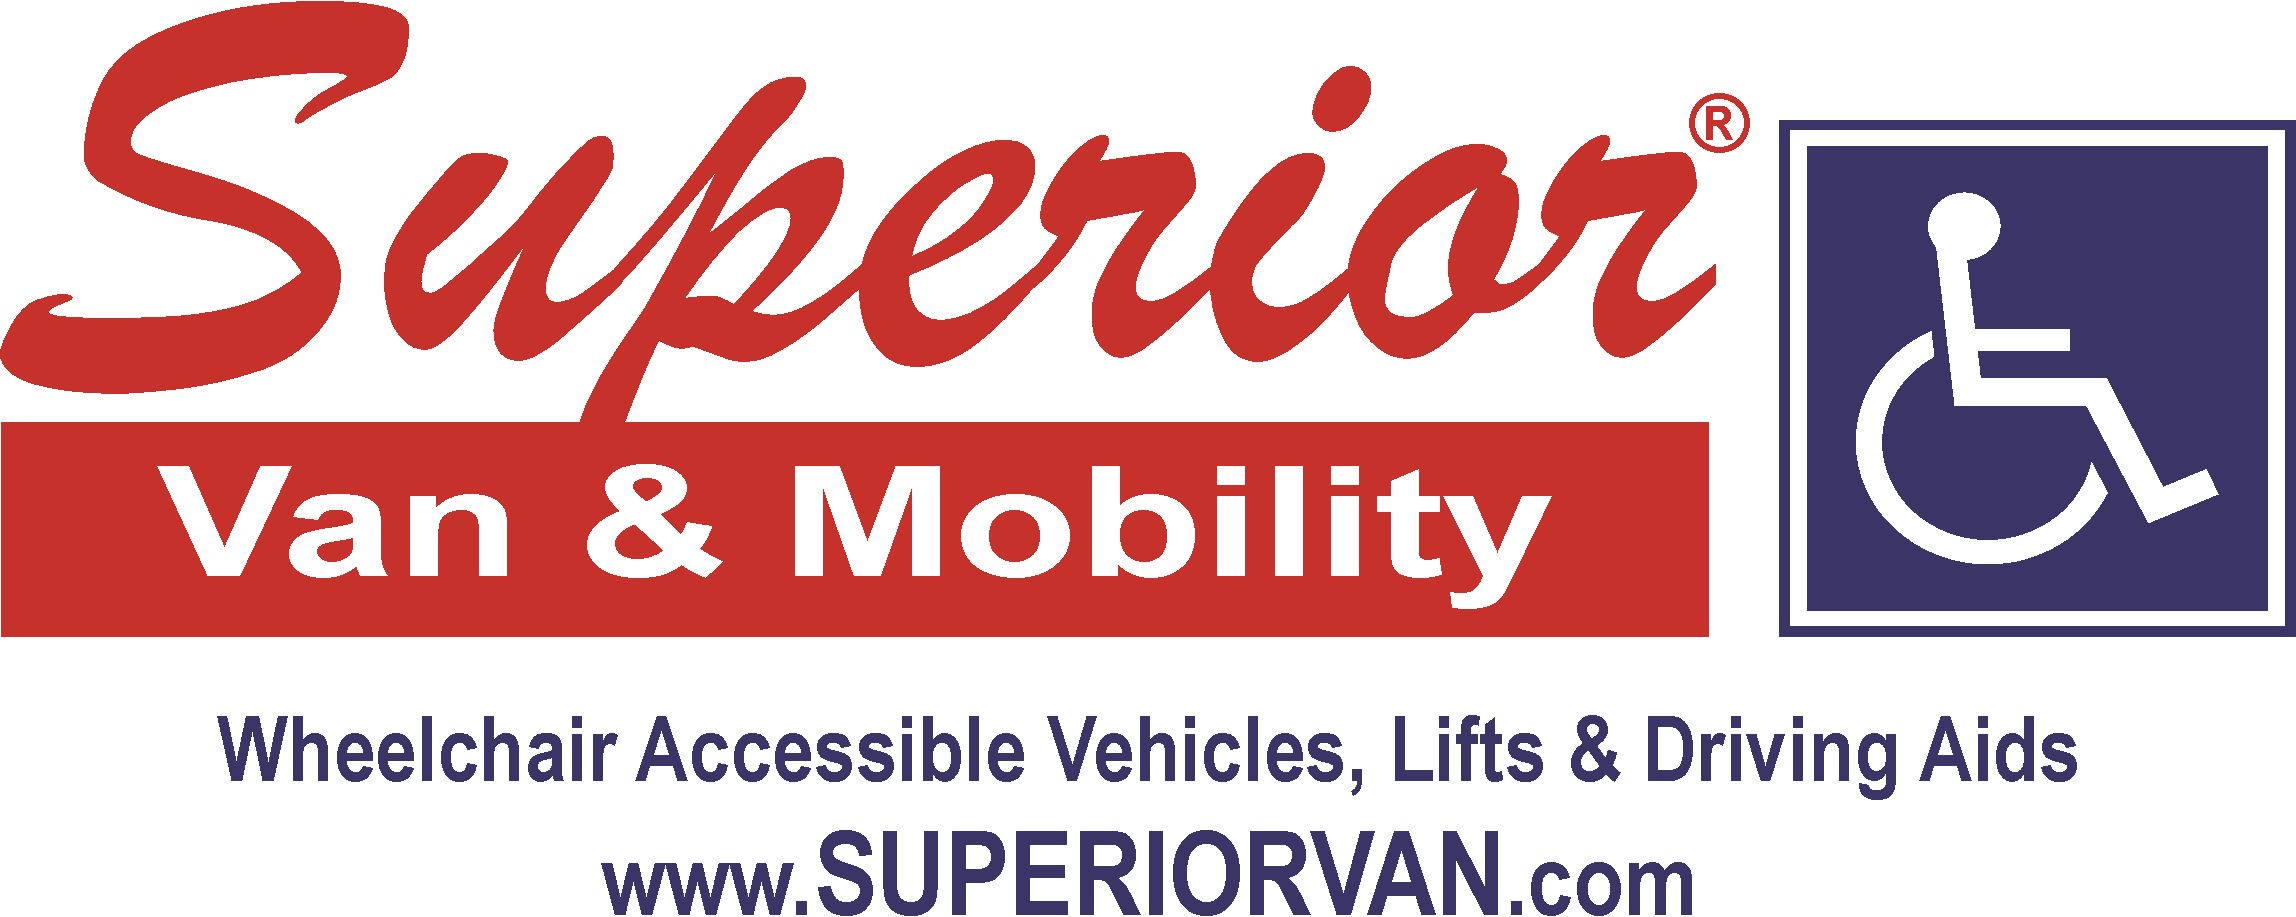 Superior Mobility Opens in new window